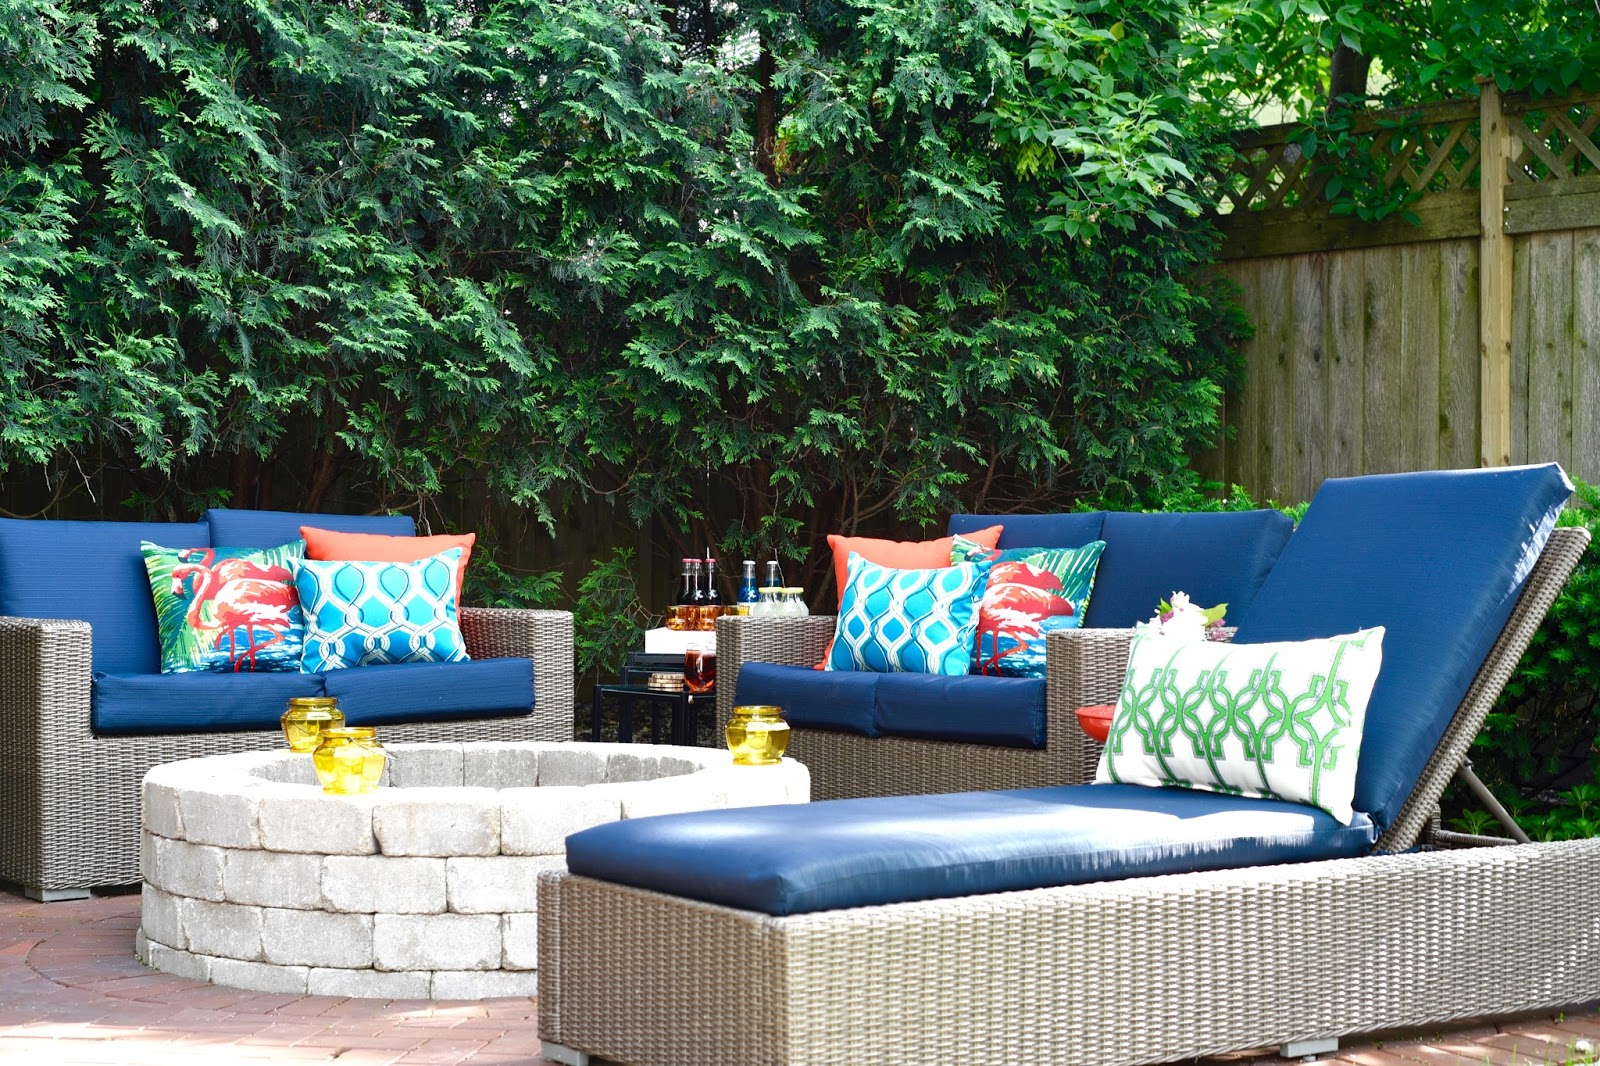 Decorating Ideas For Outdoor Spaces - Home with Keki